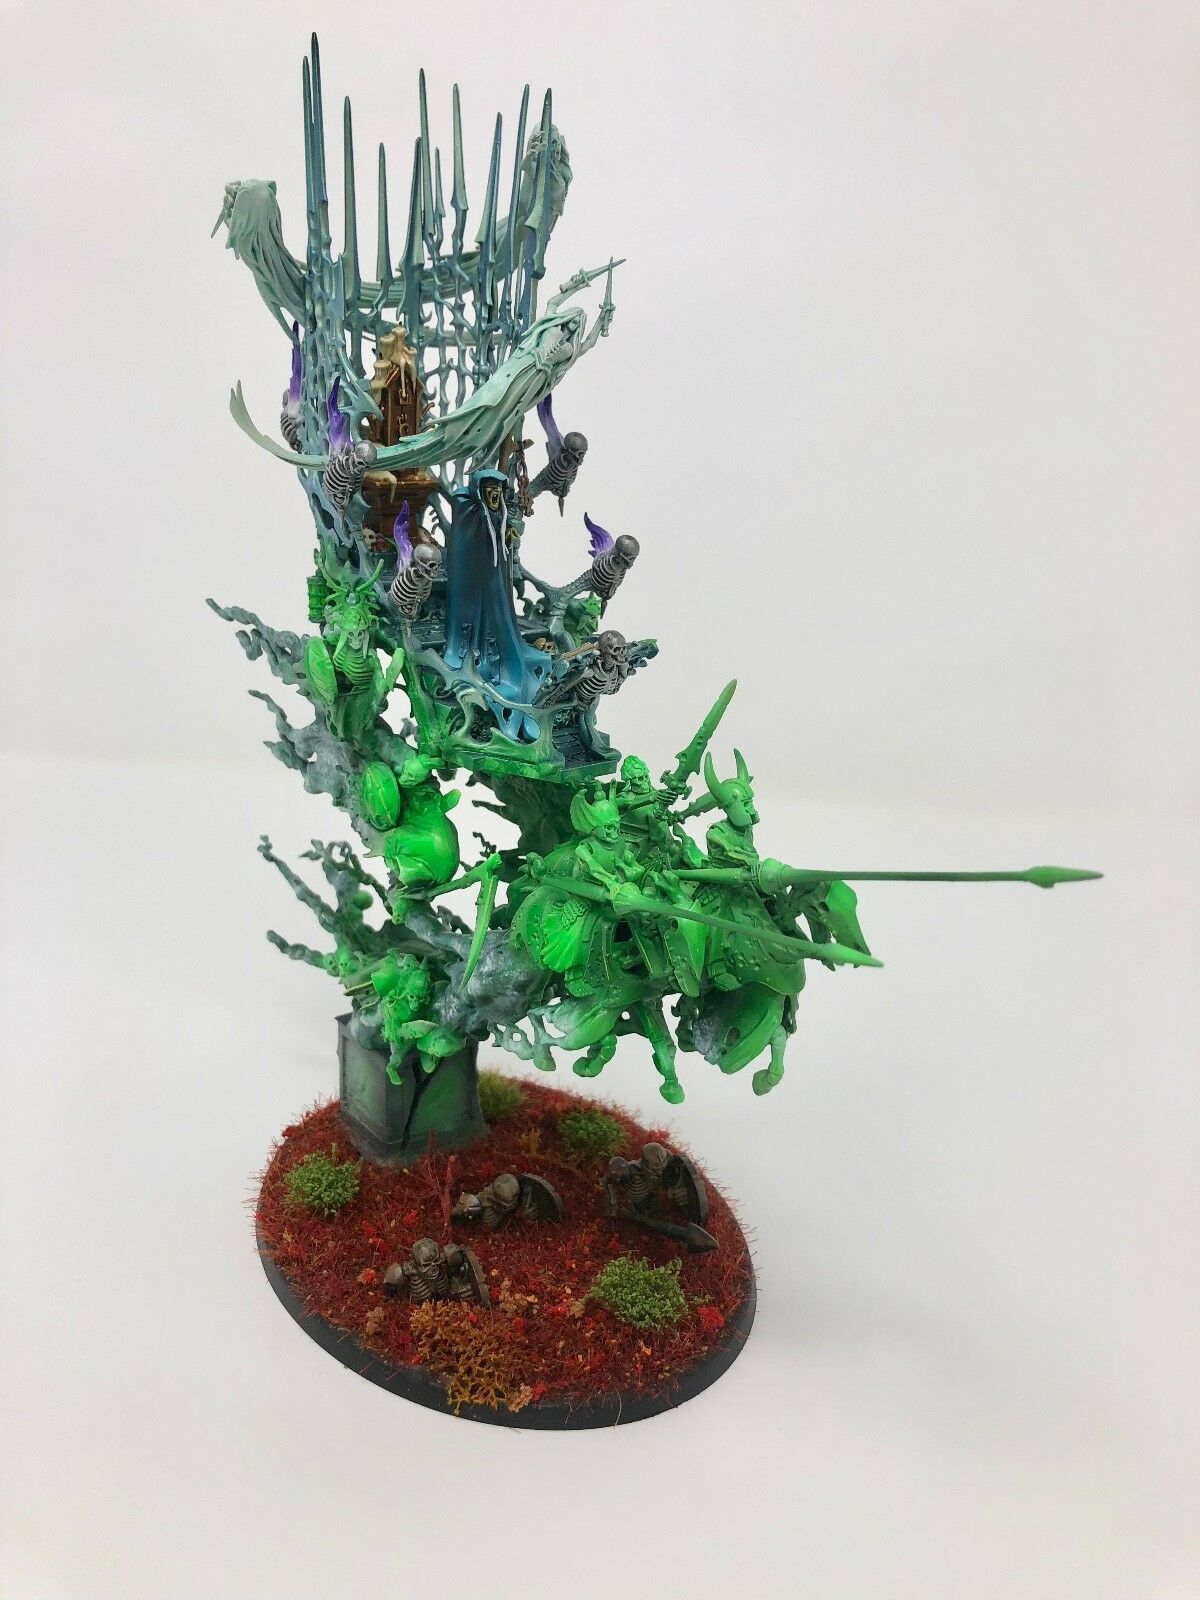 Games Workshop nighthaunt Mortis motor bien pintados